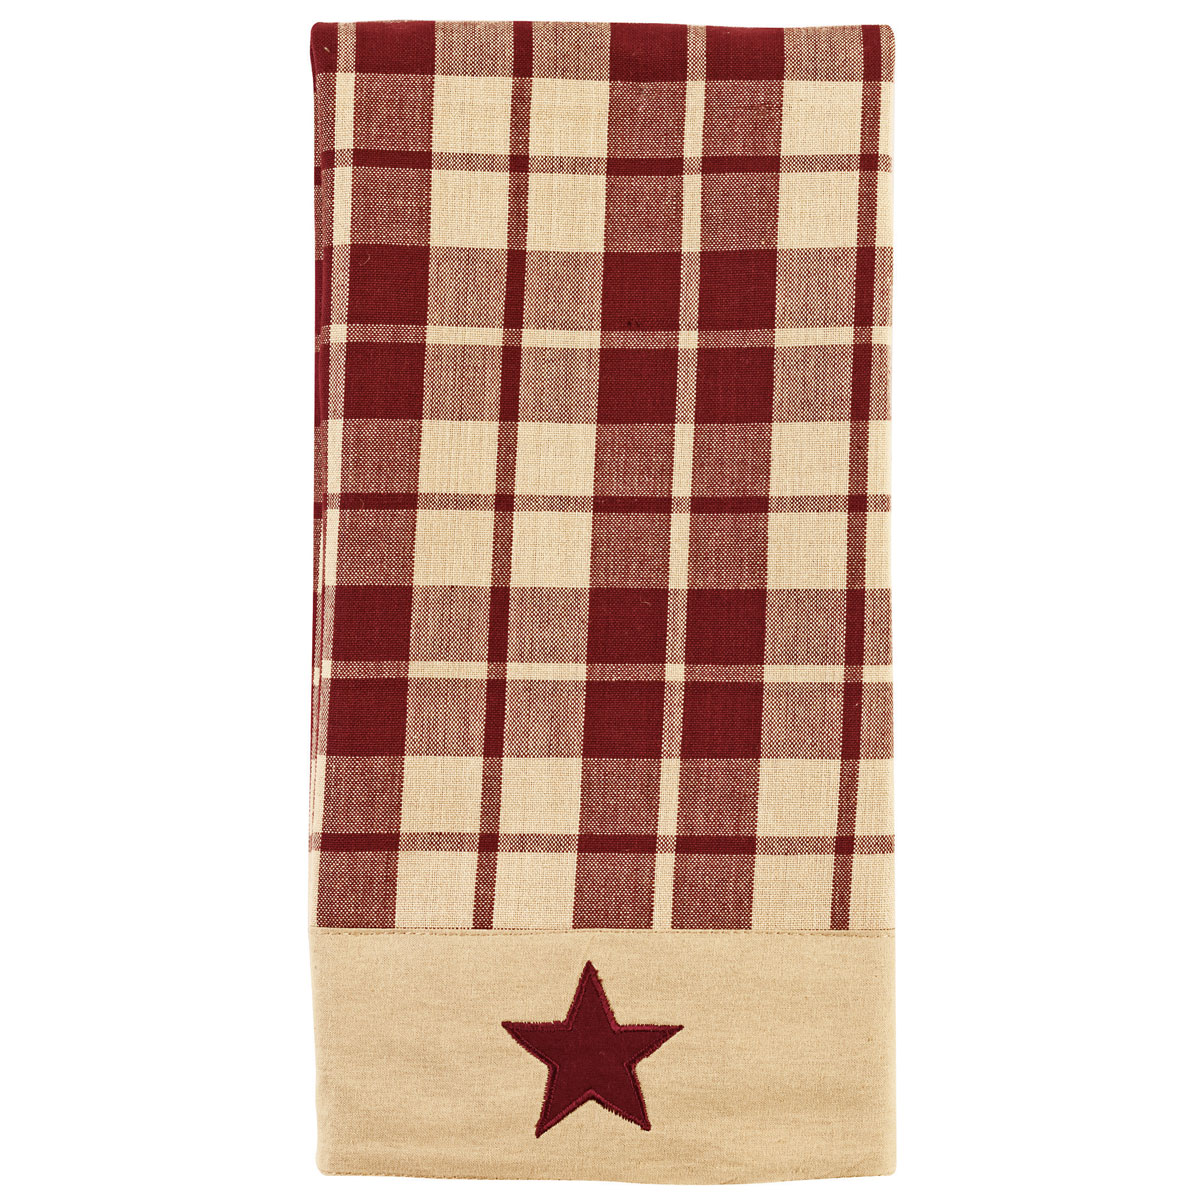 Primitive Farmhouse Star Country Kitchen Towel, Burgundy